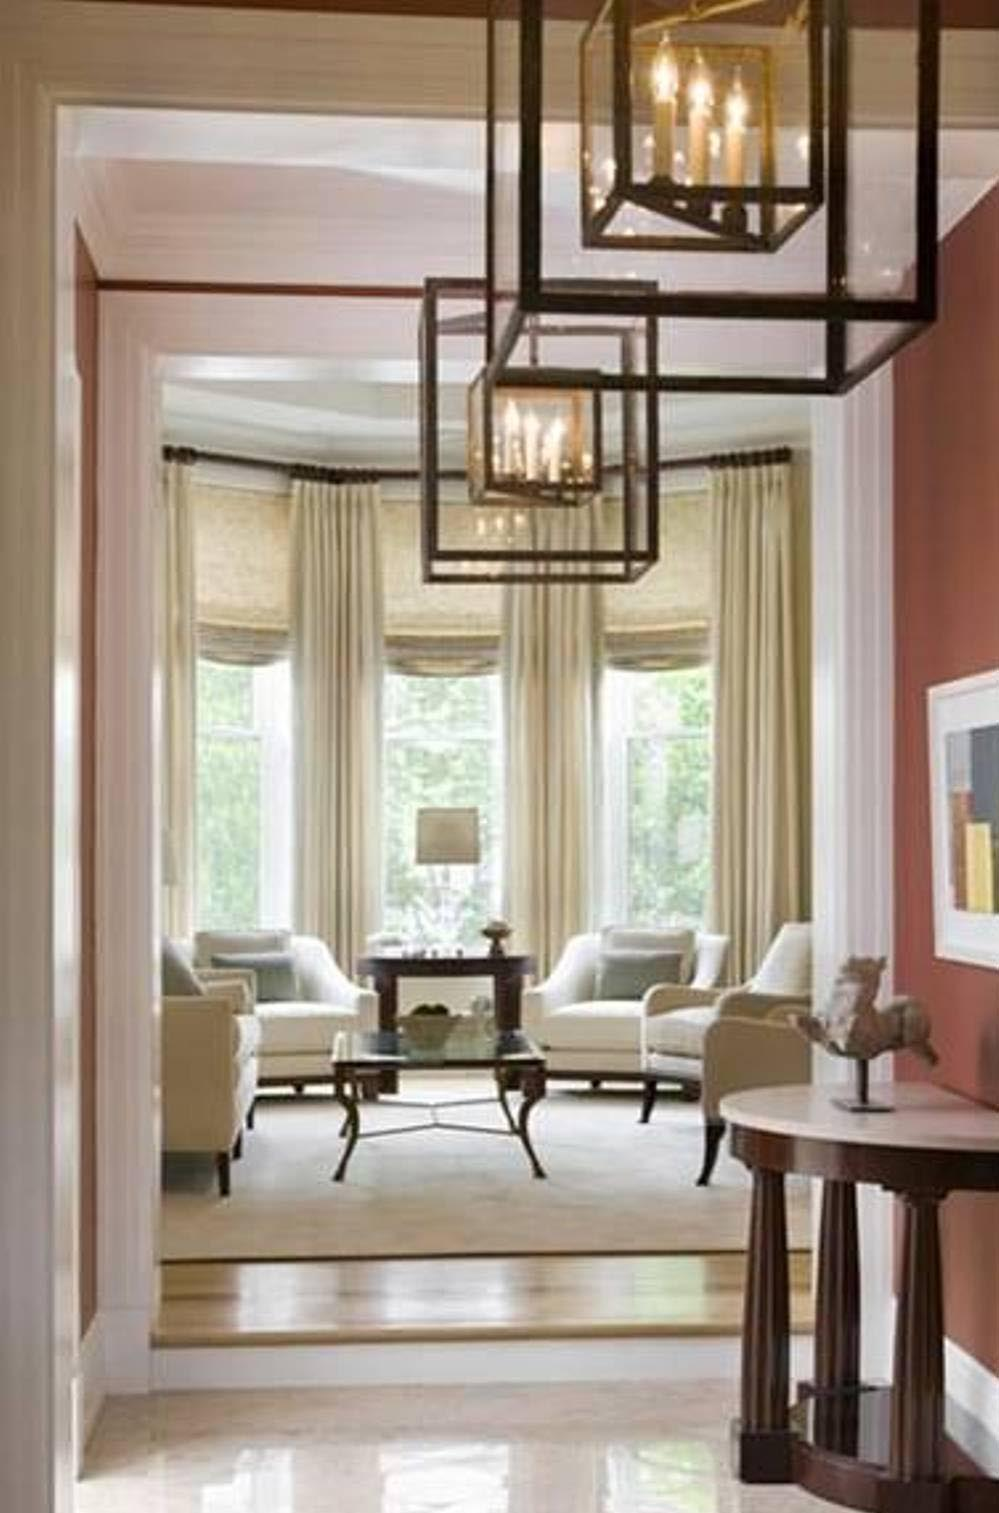 Foyer Lighting Fixtures Ideas : Foyer pendant light fixture fixtures design ideas